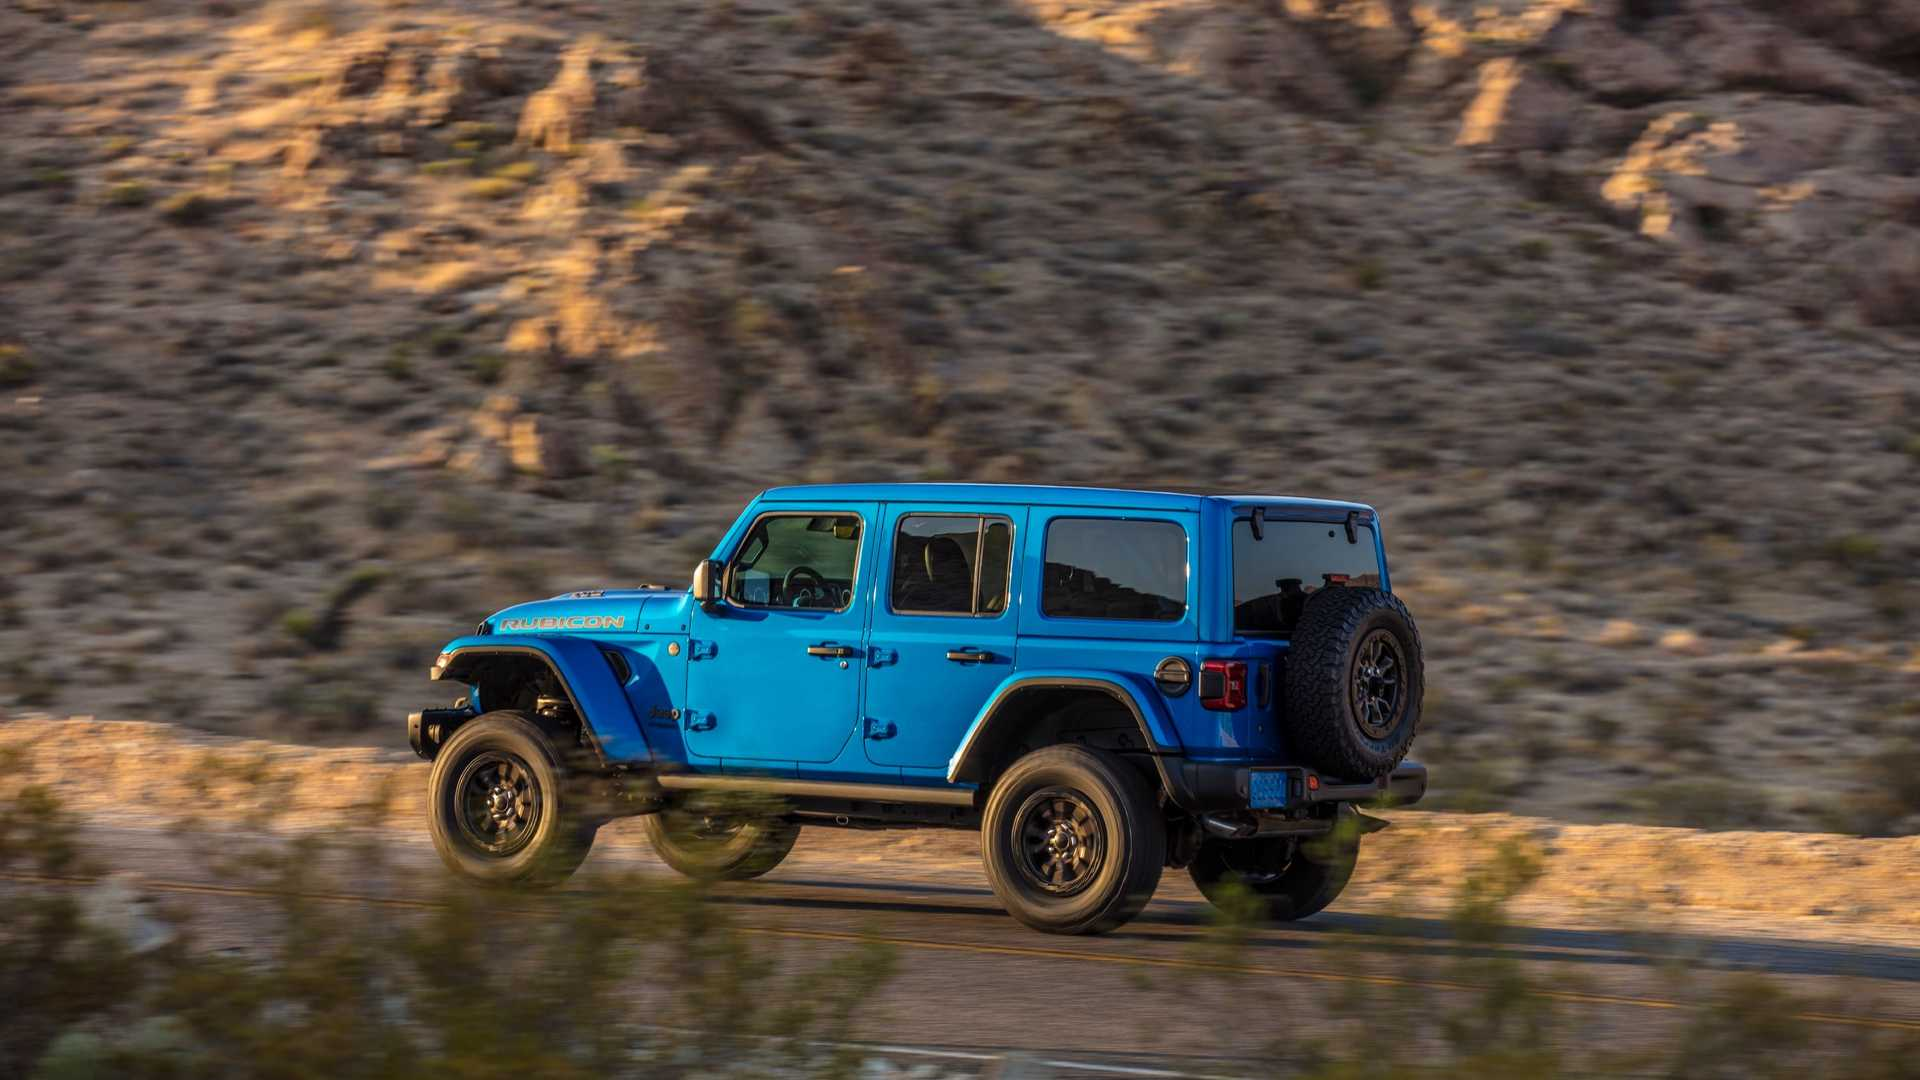 2021-jeep-wrangler-rubicon-392-side-view-1